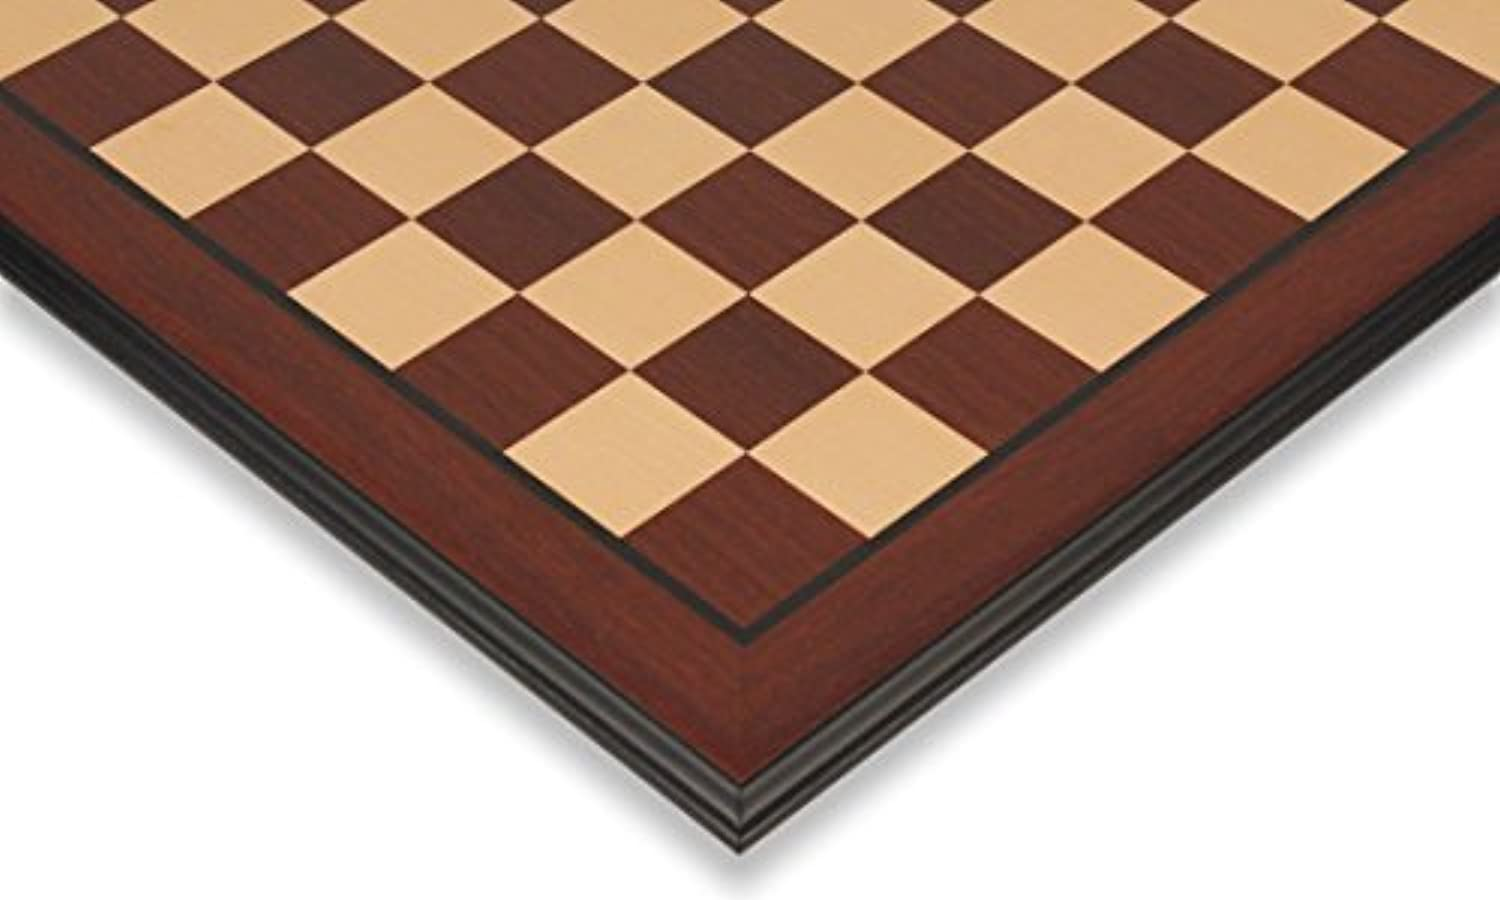 Bud Rosewood & Maple Chess Board with Molded Edge - 2.125 Squares by The Chess Store [並行輸入品]